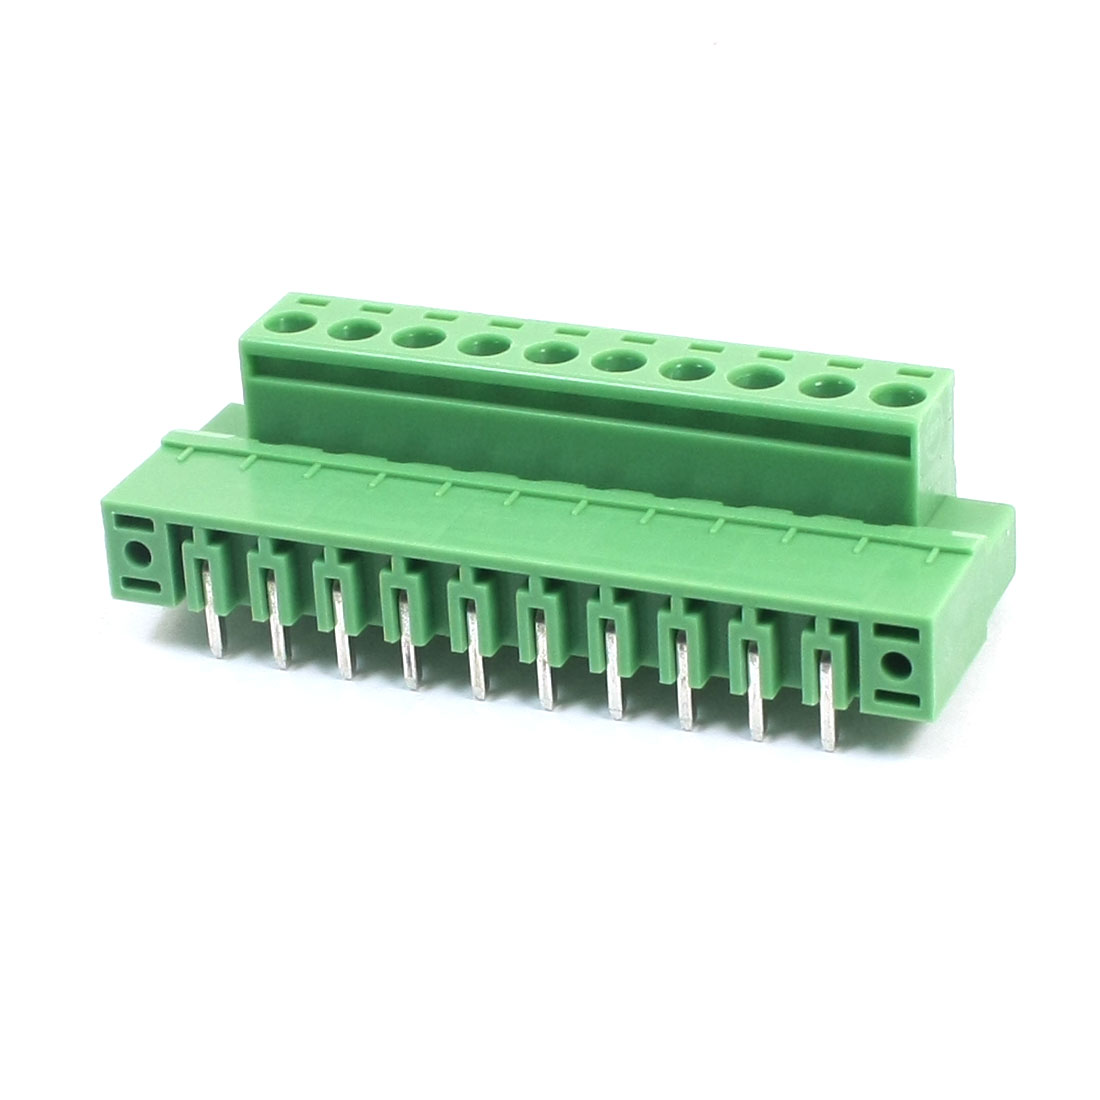 5.08mm Pitch 10-Pin 14-22AWG Pluggable Type PCB Mounting Green Plastic PCB Screw Terminal Block Connector